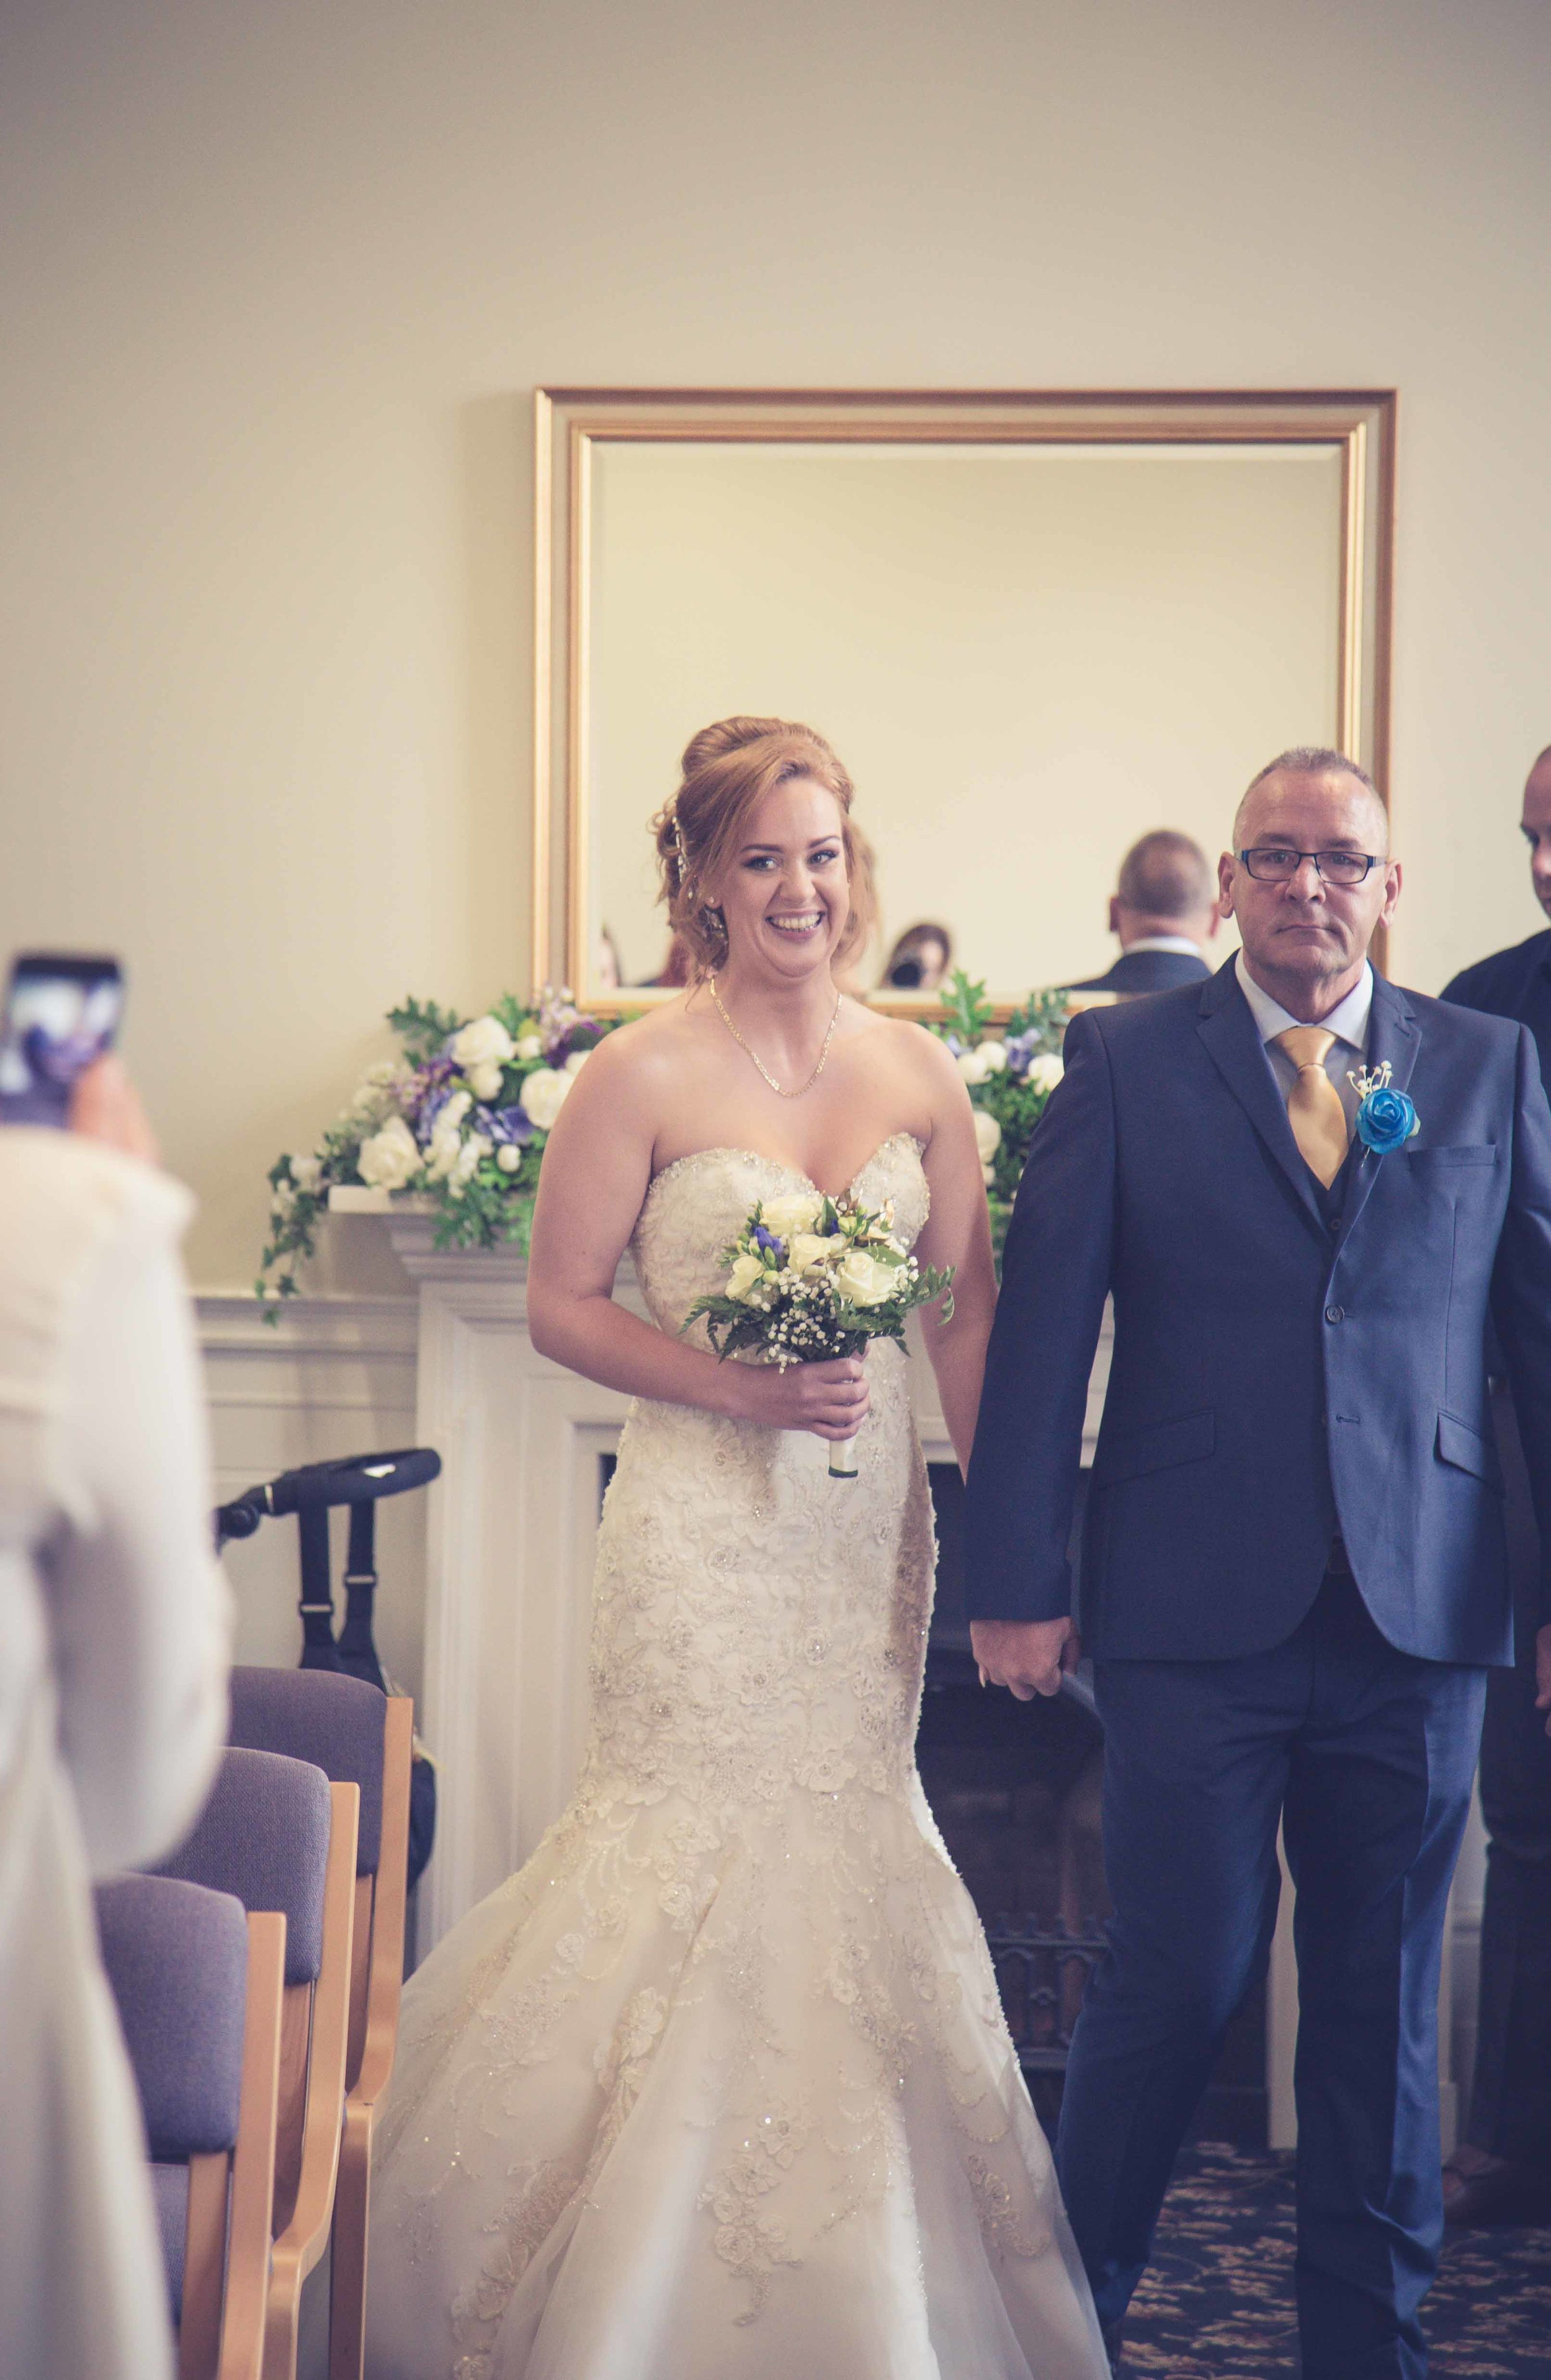 wedding-photos-at-st-georges-hall-liverpool (16 of 122).jpg